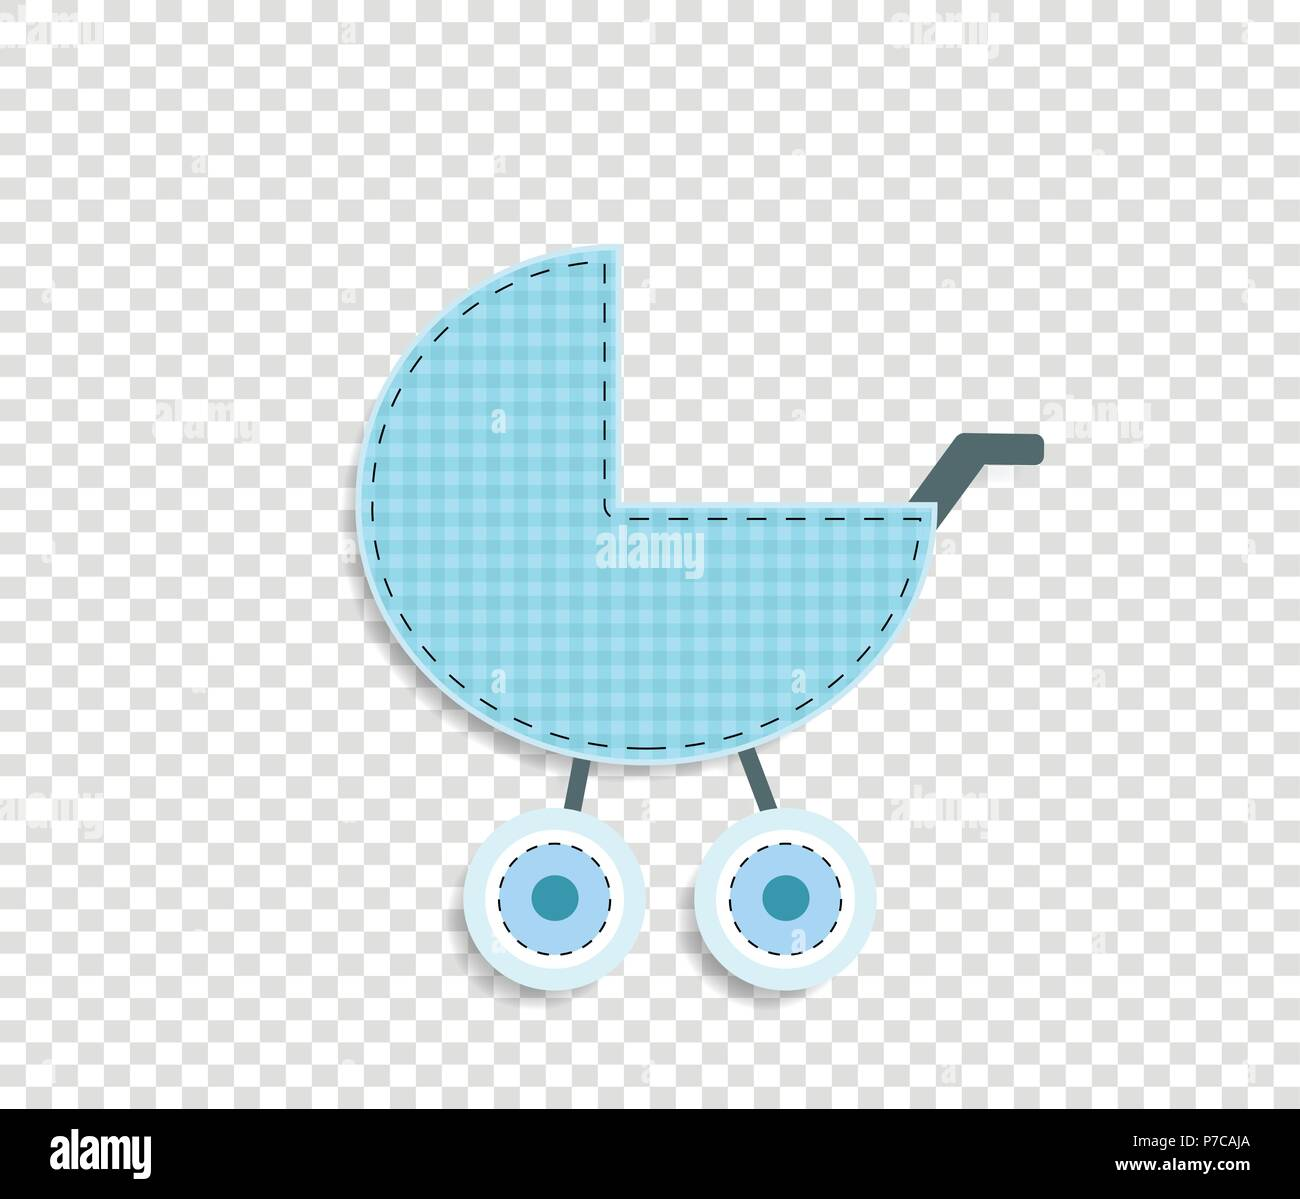 Cute Baby Boy Vector Clip Art Element For Scrapbook Or Baby Shower